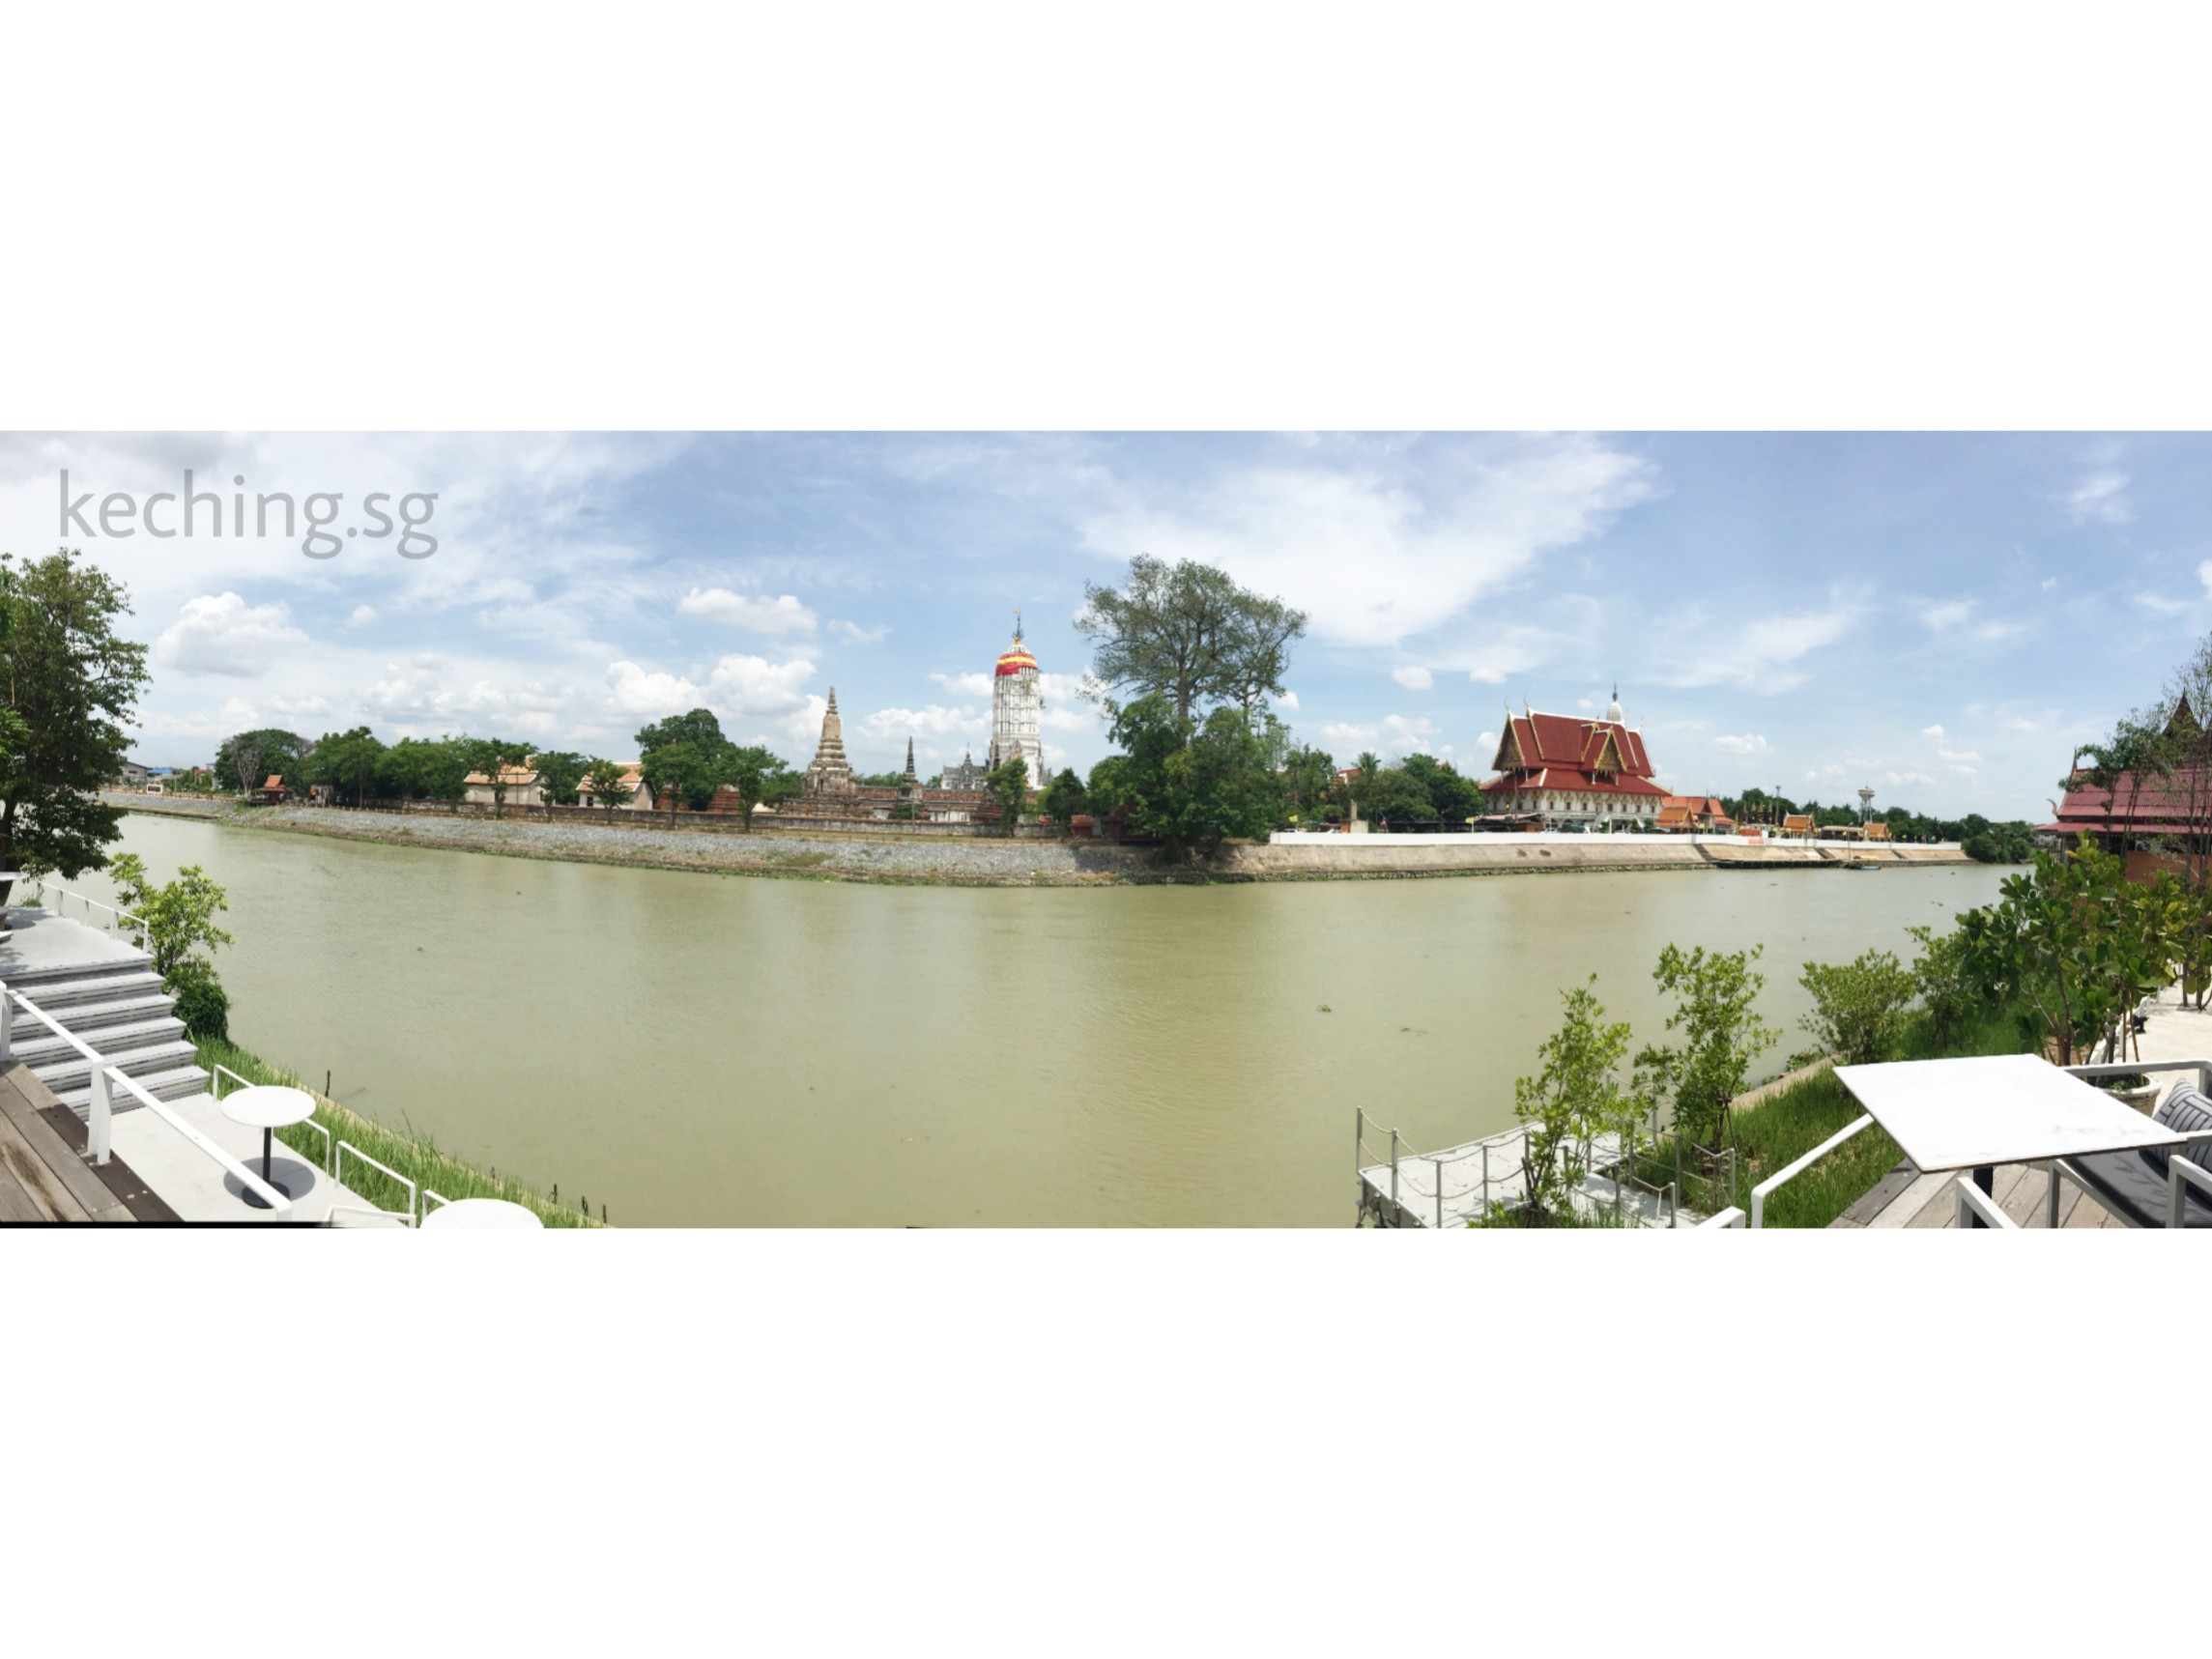 sala ayutthaya river view